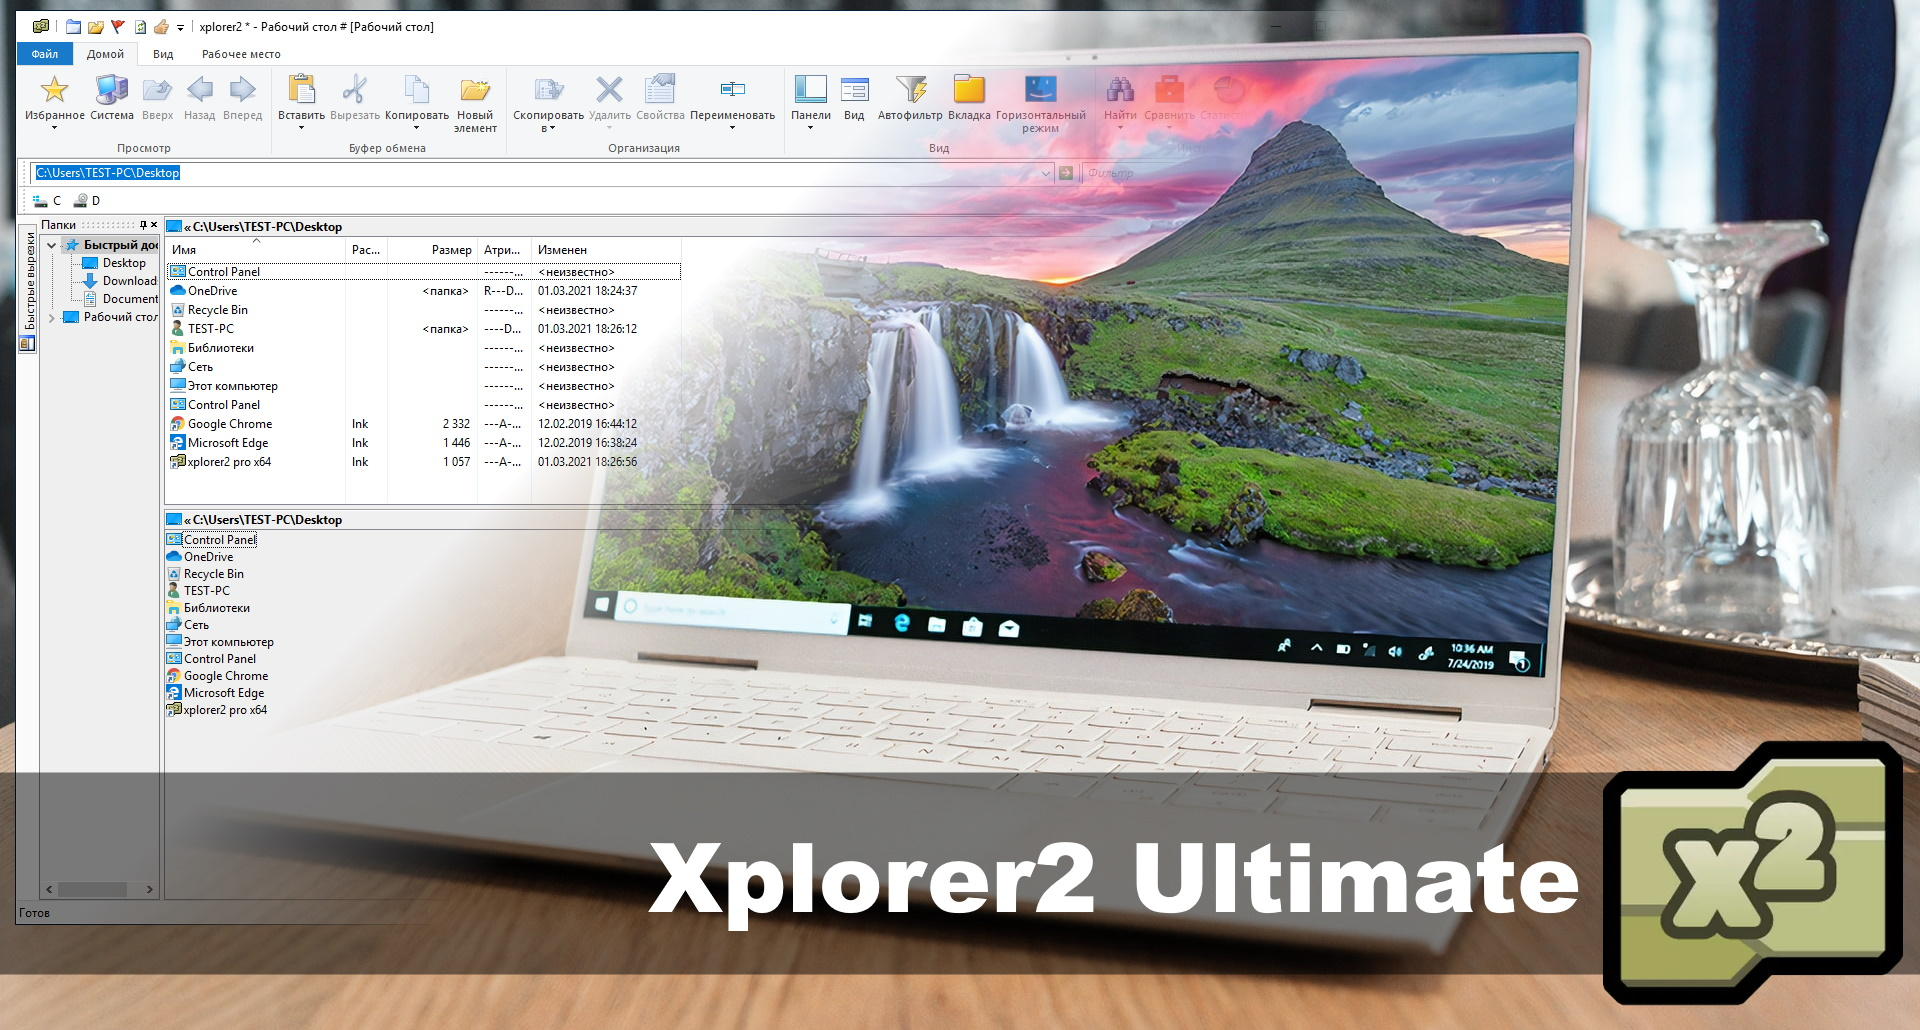 Xplorer2 Ultimate